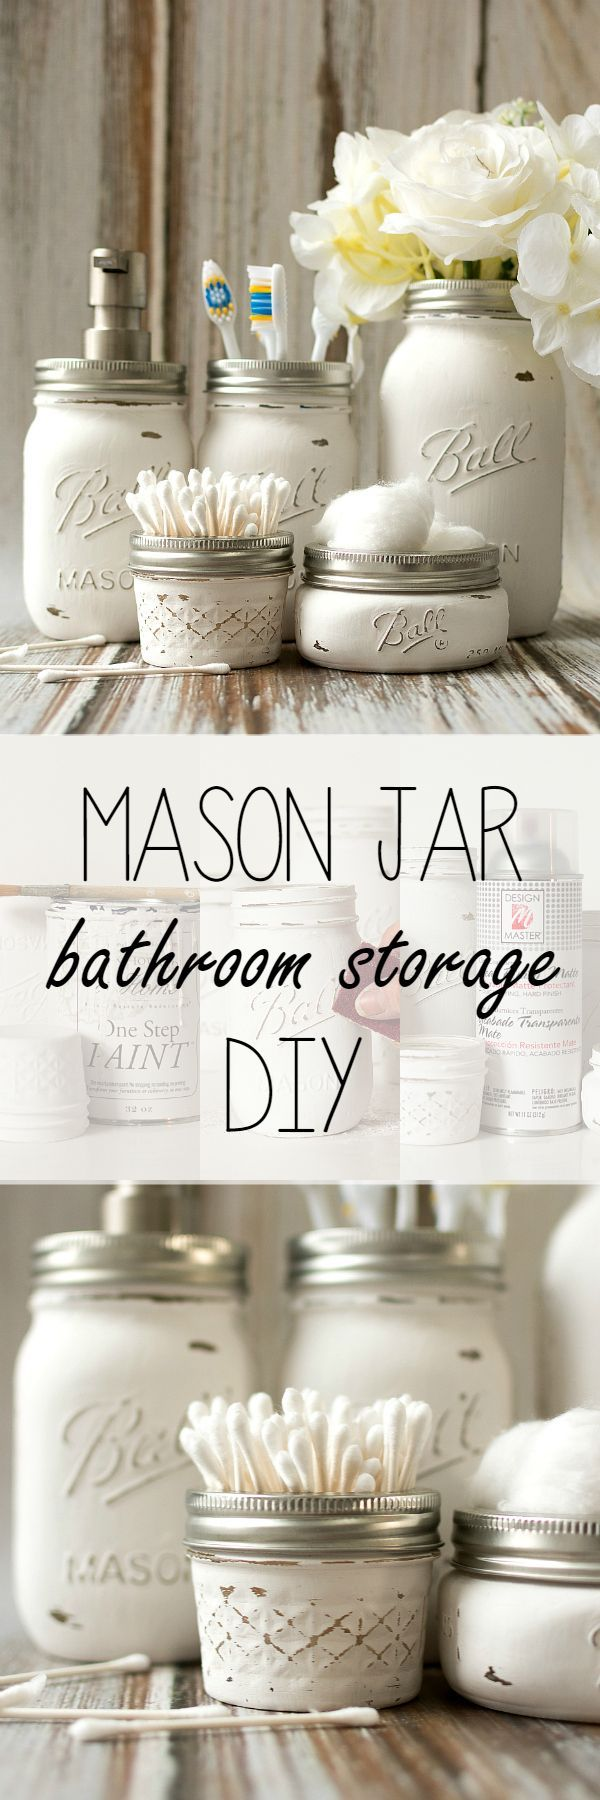 best 25+ vintage bathroom accessories ideas on pinterest | diy